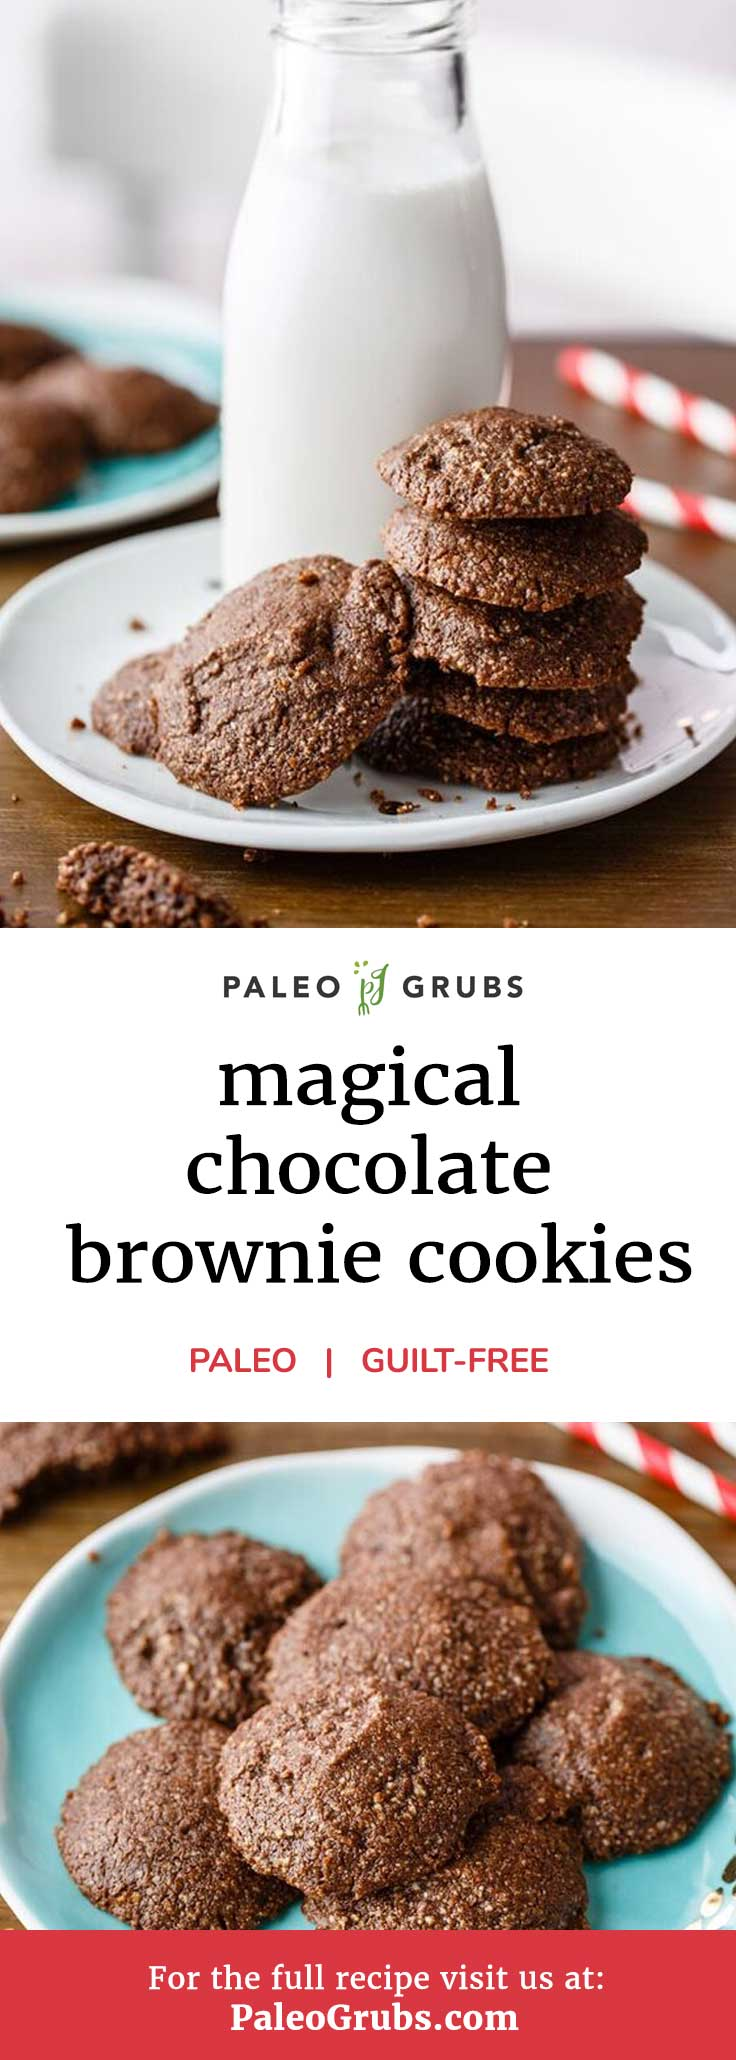 If chocolate brownies are your weakness, then you absolutely have to check out this recipe that makes paleo-approved chocolate brownie cookies. It uses cacao powder for the chocolate flavoring which ends up making these brownies delicious AND nutritious without the guilt.